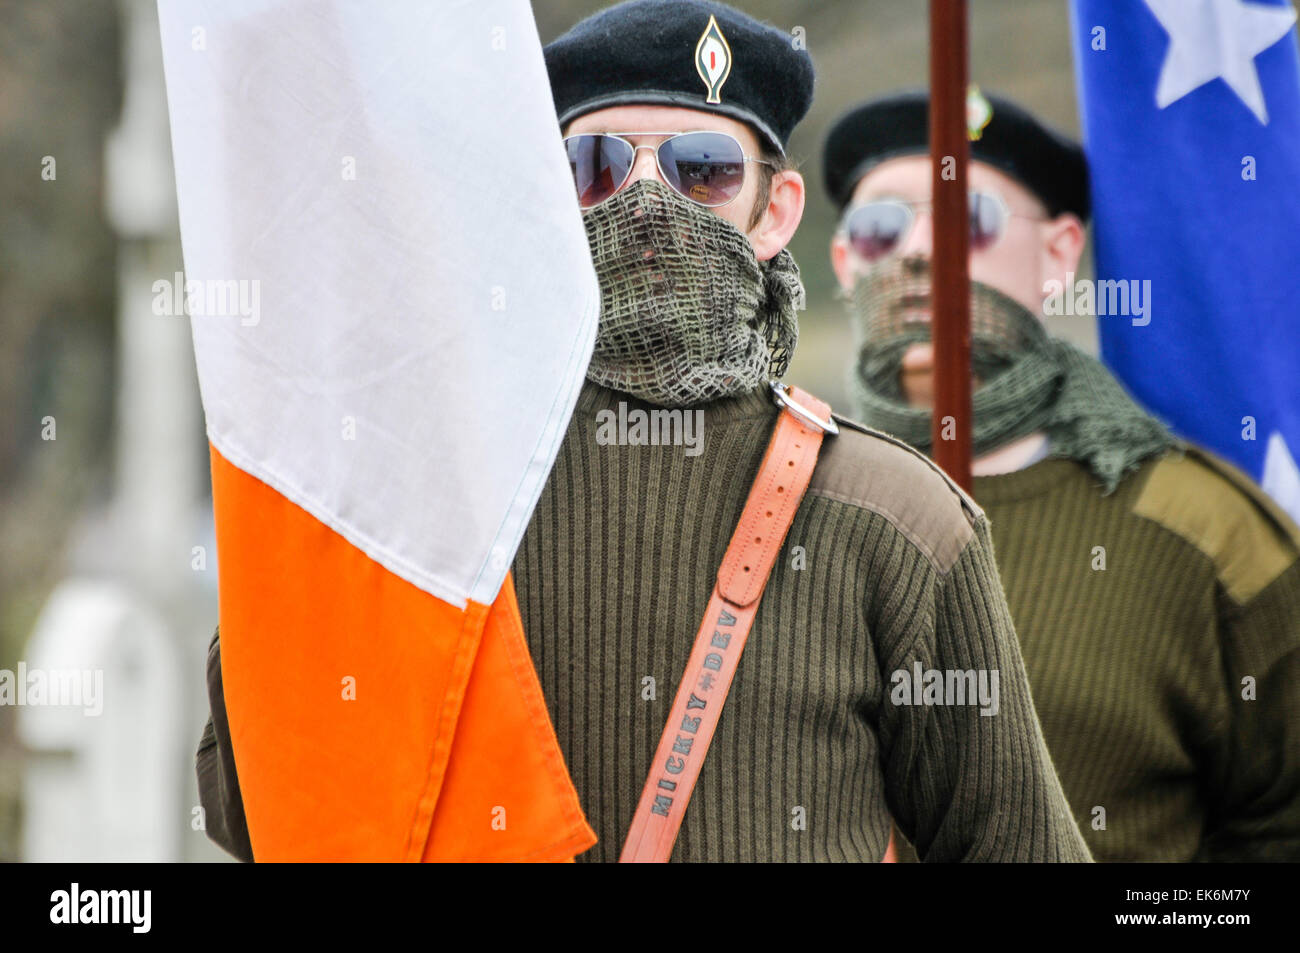 Men dressed in Irish paramilitary uniforms, with their faces